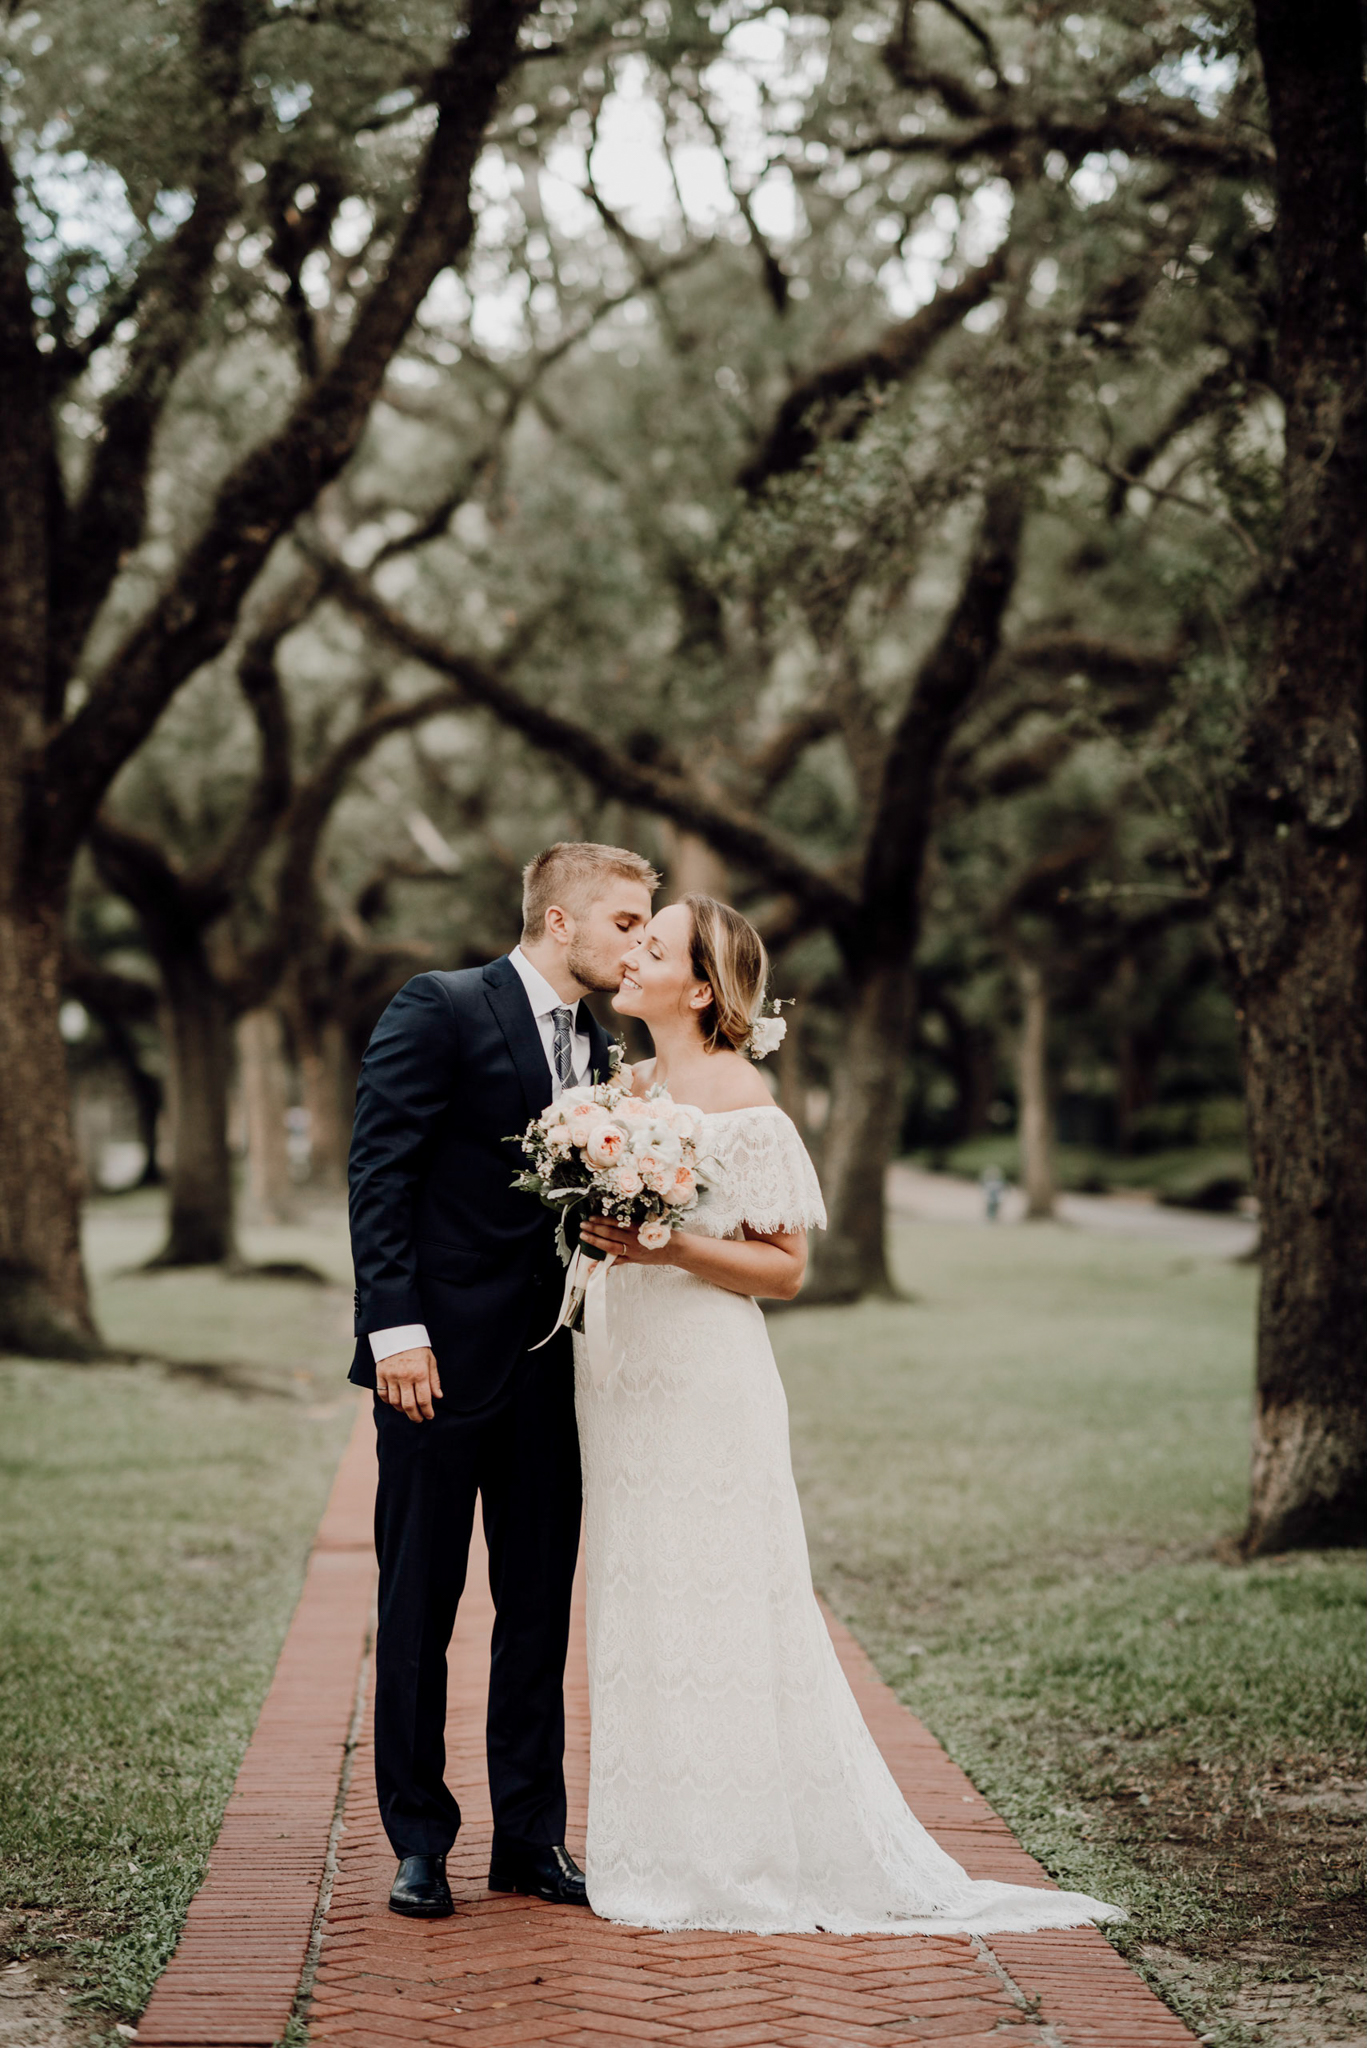 Houston Wedding Photographer-North Blvd Intimate Elopement- Houston Wedding Photographer -Kristen Giles Photography-52.jpg